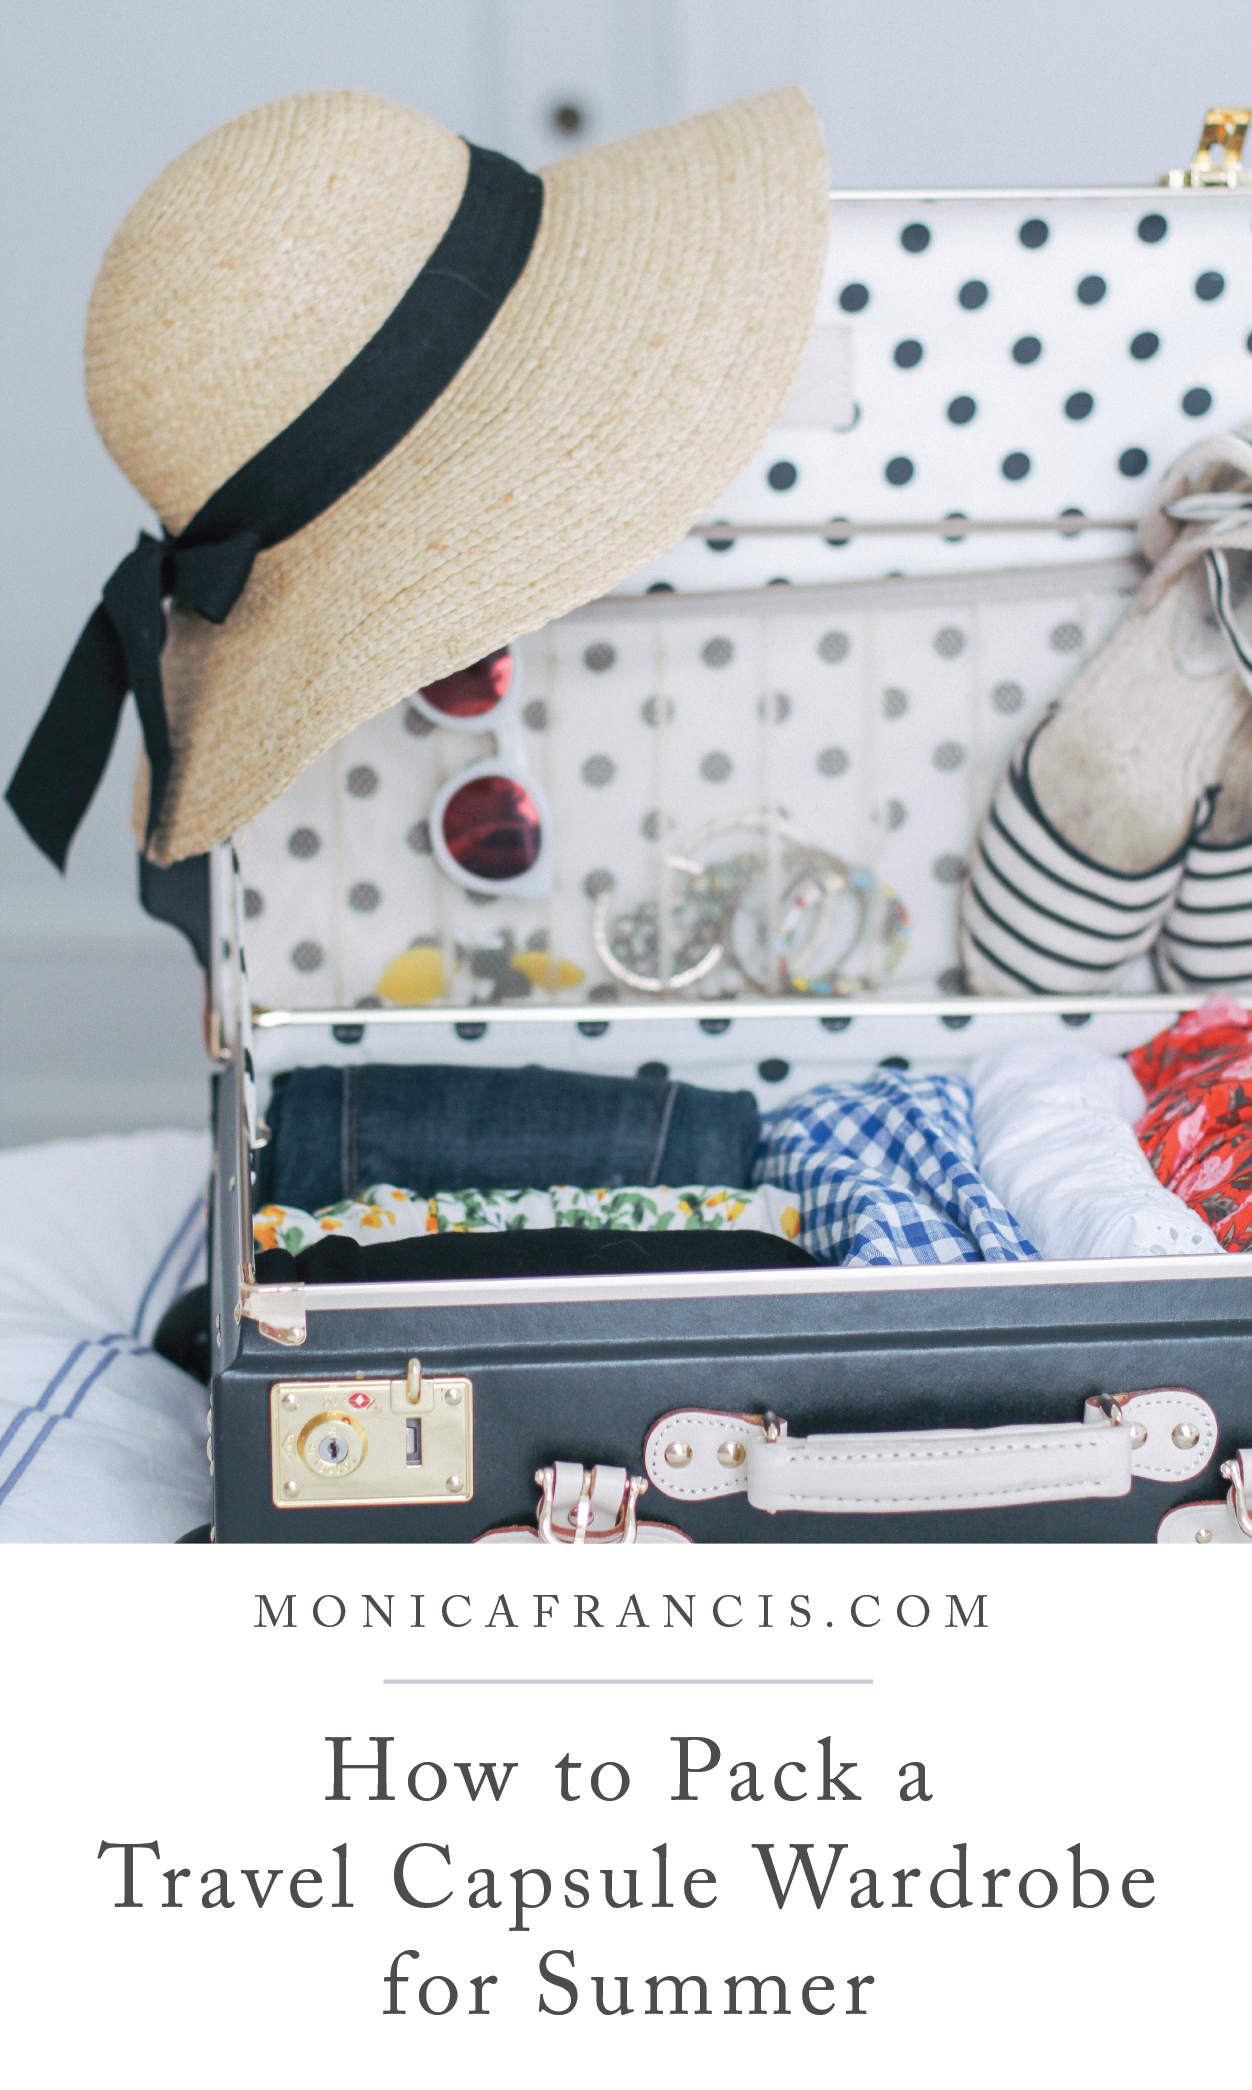 How to Pack a Summer Travel Capsule Wardrobe | Monica Francis Design | Wherever you're headed next, from exploring Europe to a beach vacation, learn how to pack light and travel in style. Here's what to pack in your carry-on bag, ideas for what to wear at your next destination, and how to make it all work together! | Packing Light | Carry-on Packing | #traveltips #travelcapsule #packlight